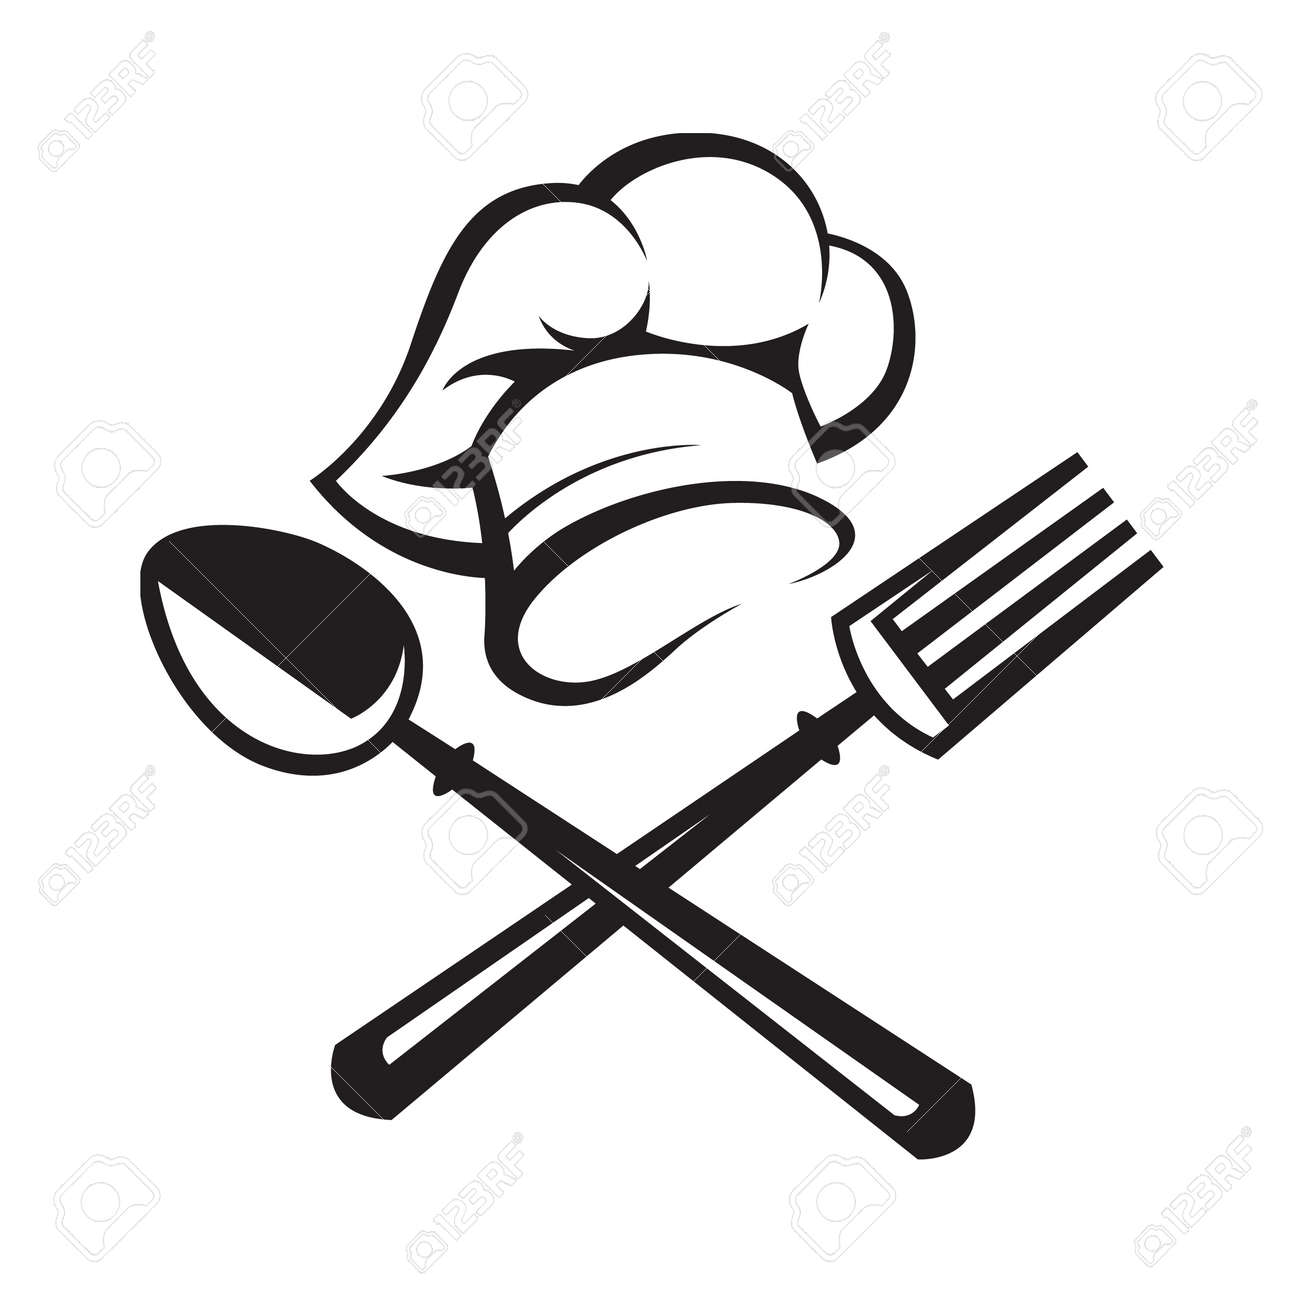 hight resolution of black illustration of spoon fork and chef hat